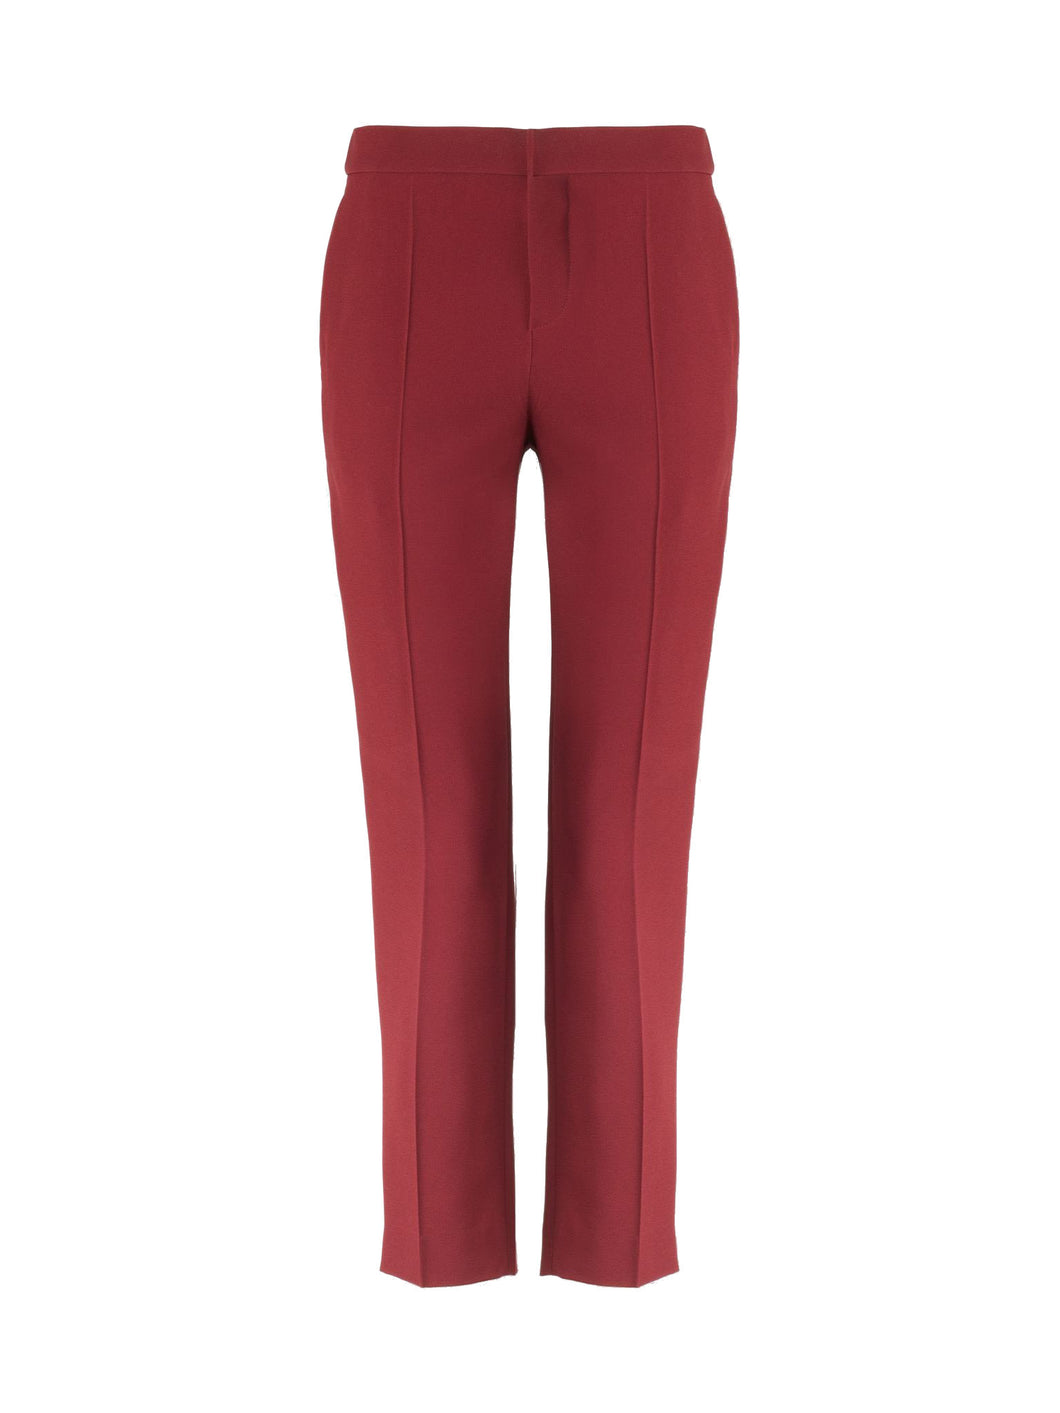 Chloé Slim Pants Dark Red